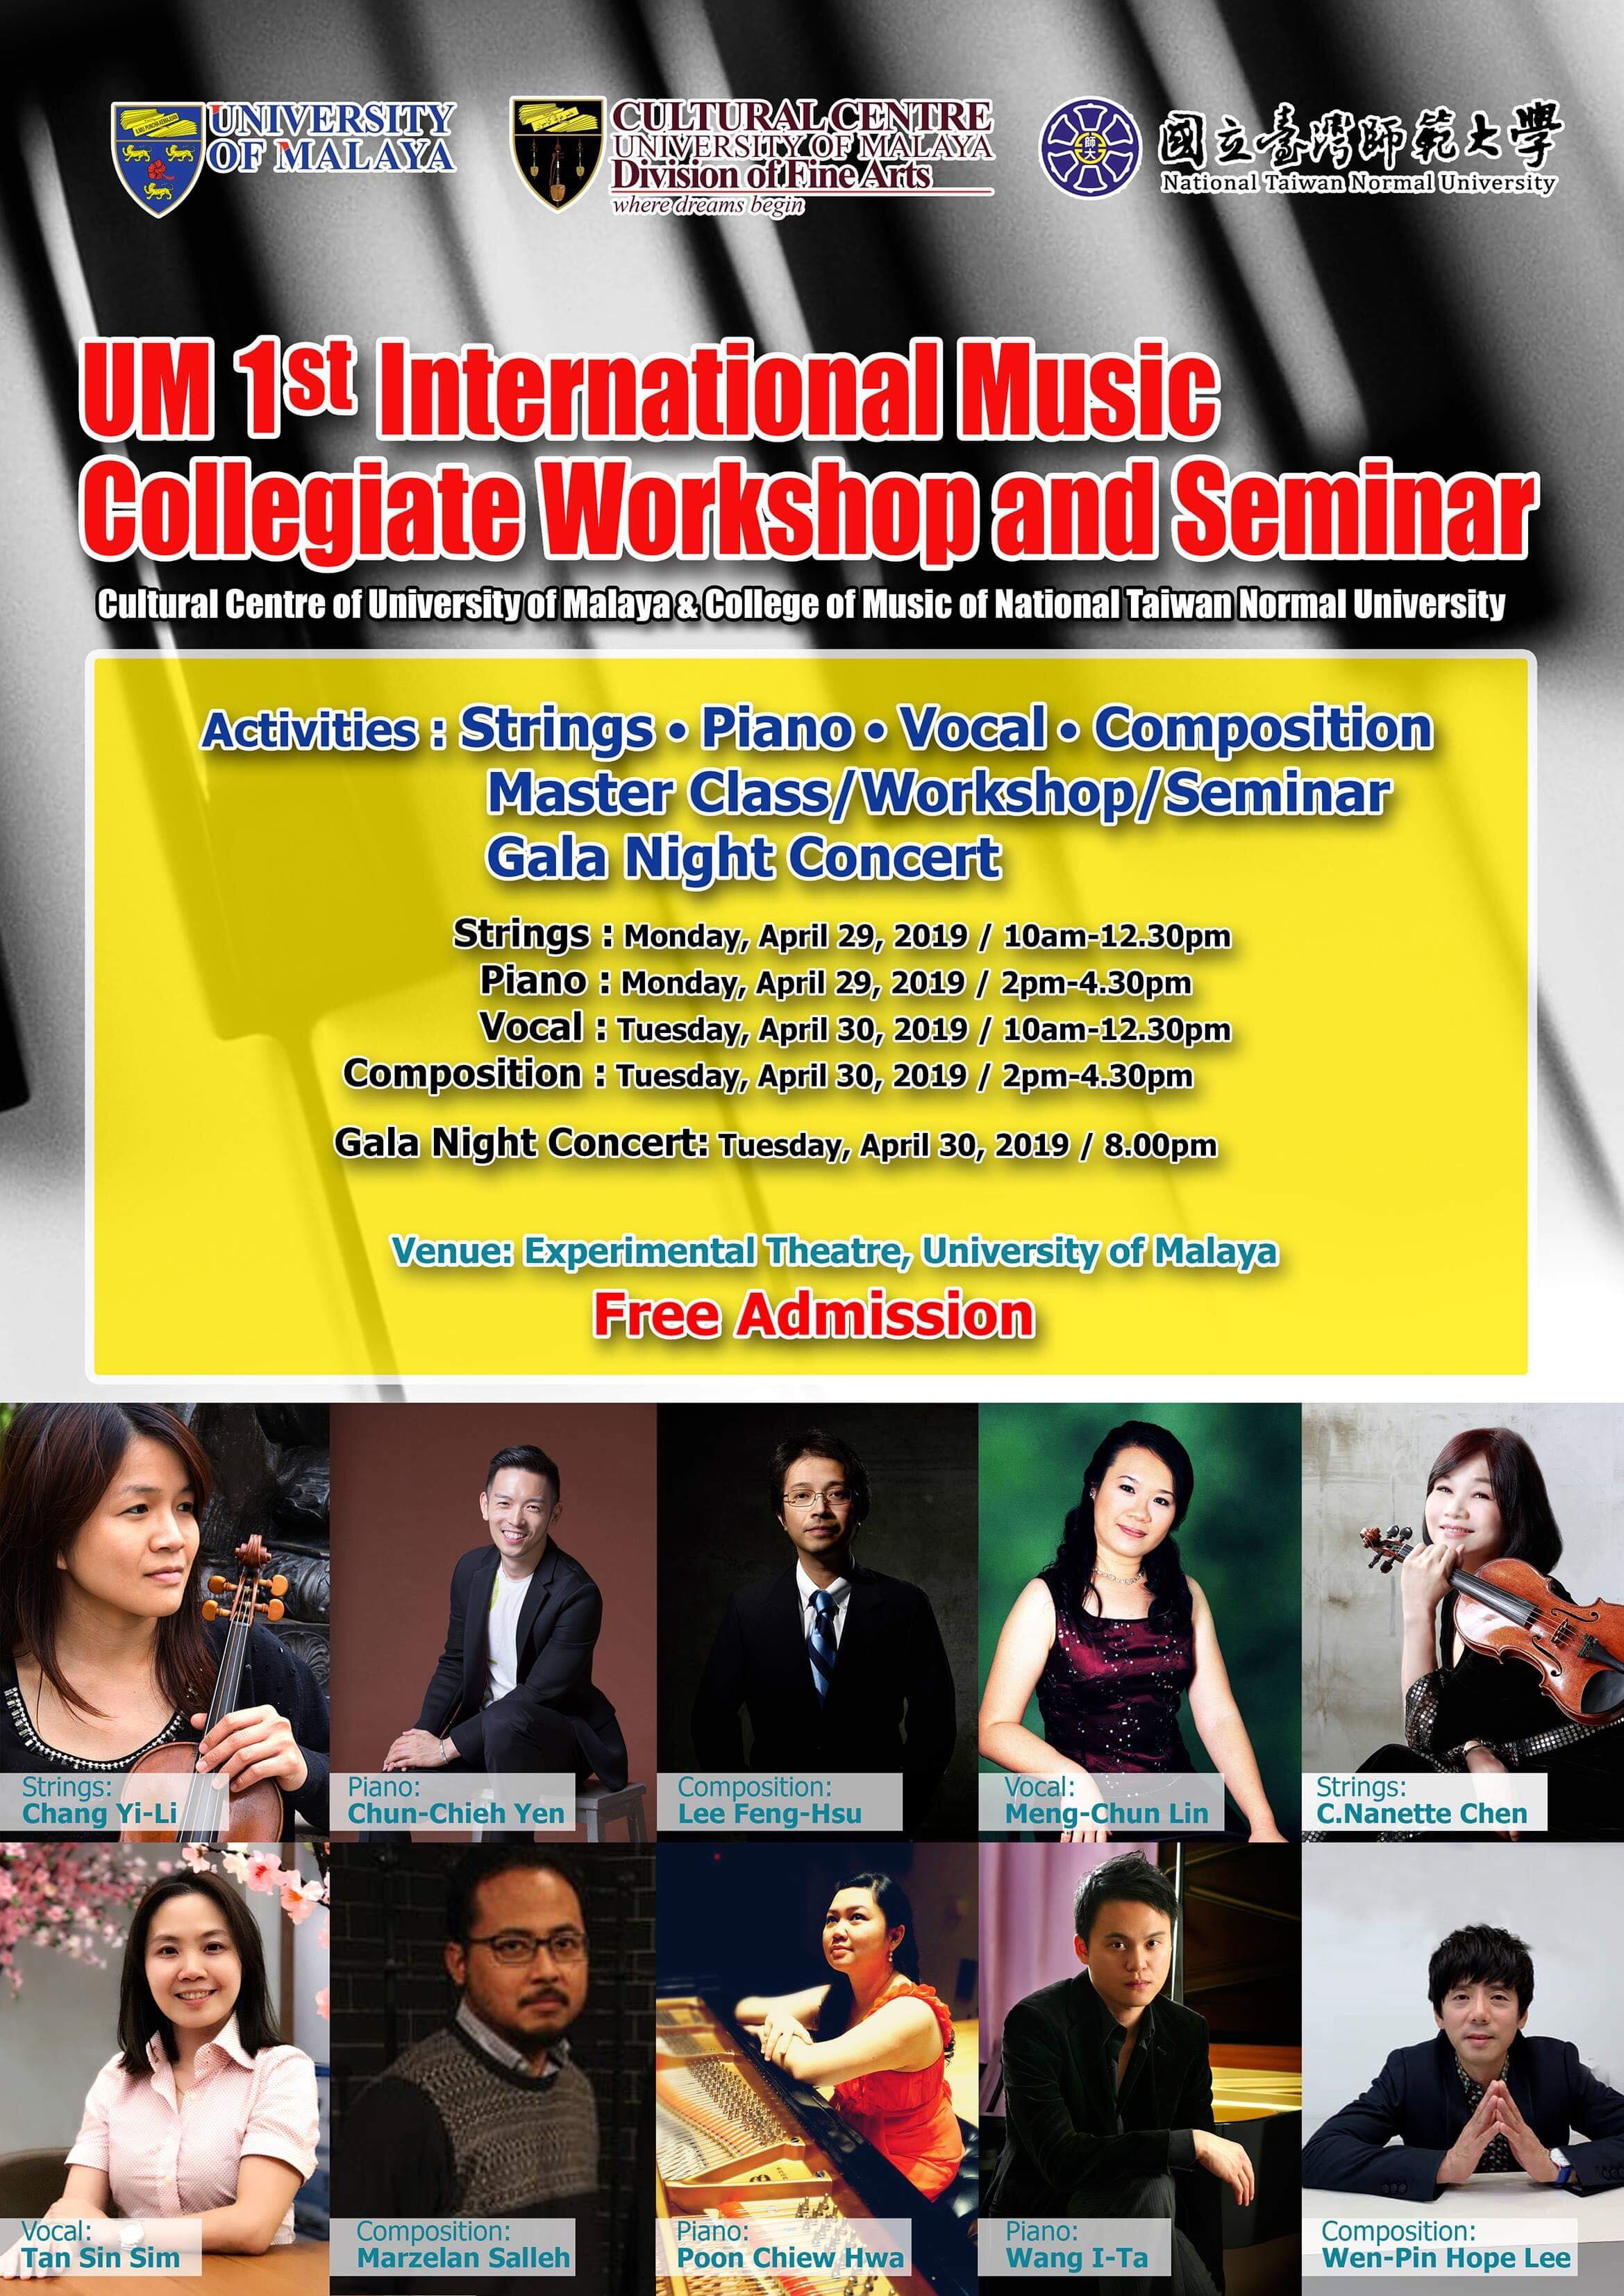 University of Malaya First International Music Collegiate Workshop and Seminar Poster